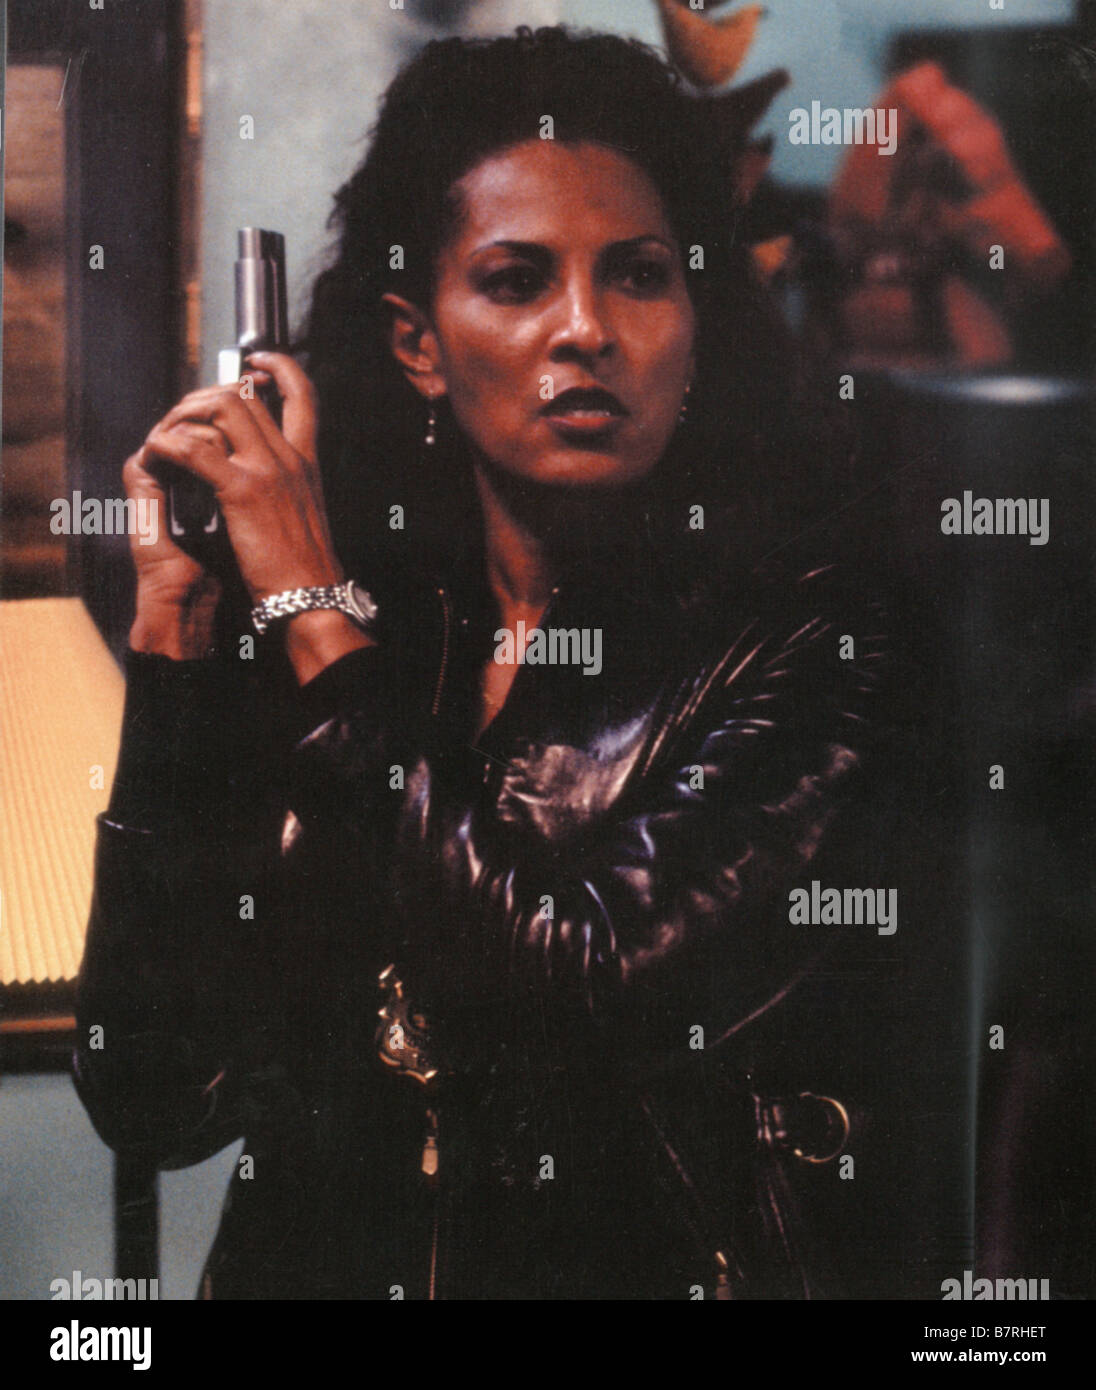 GANGSTA COP IN TOO DEEP  Year: 1999 USA Pam Grier USA 1999  Director: Michael Rymer - Stock Image